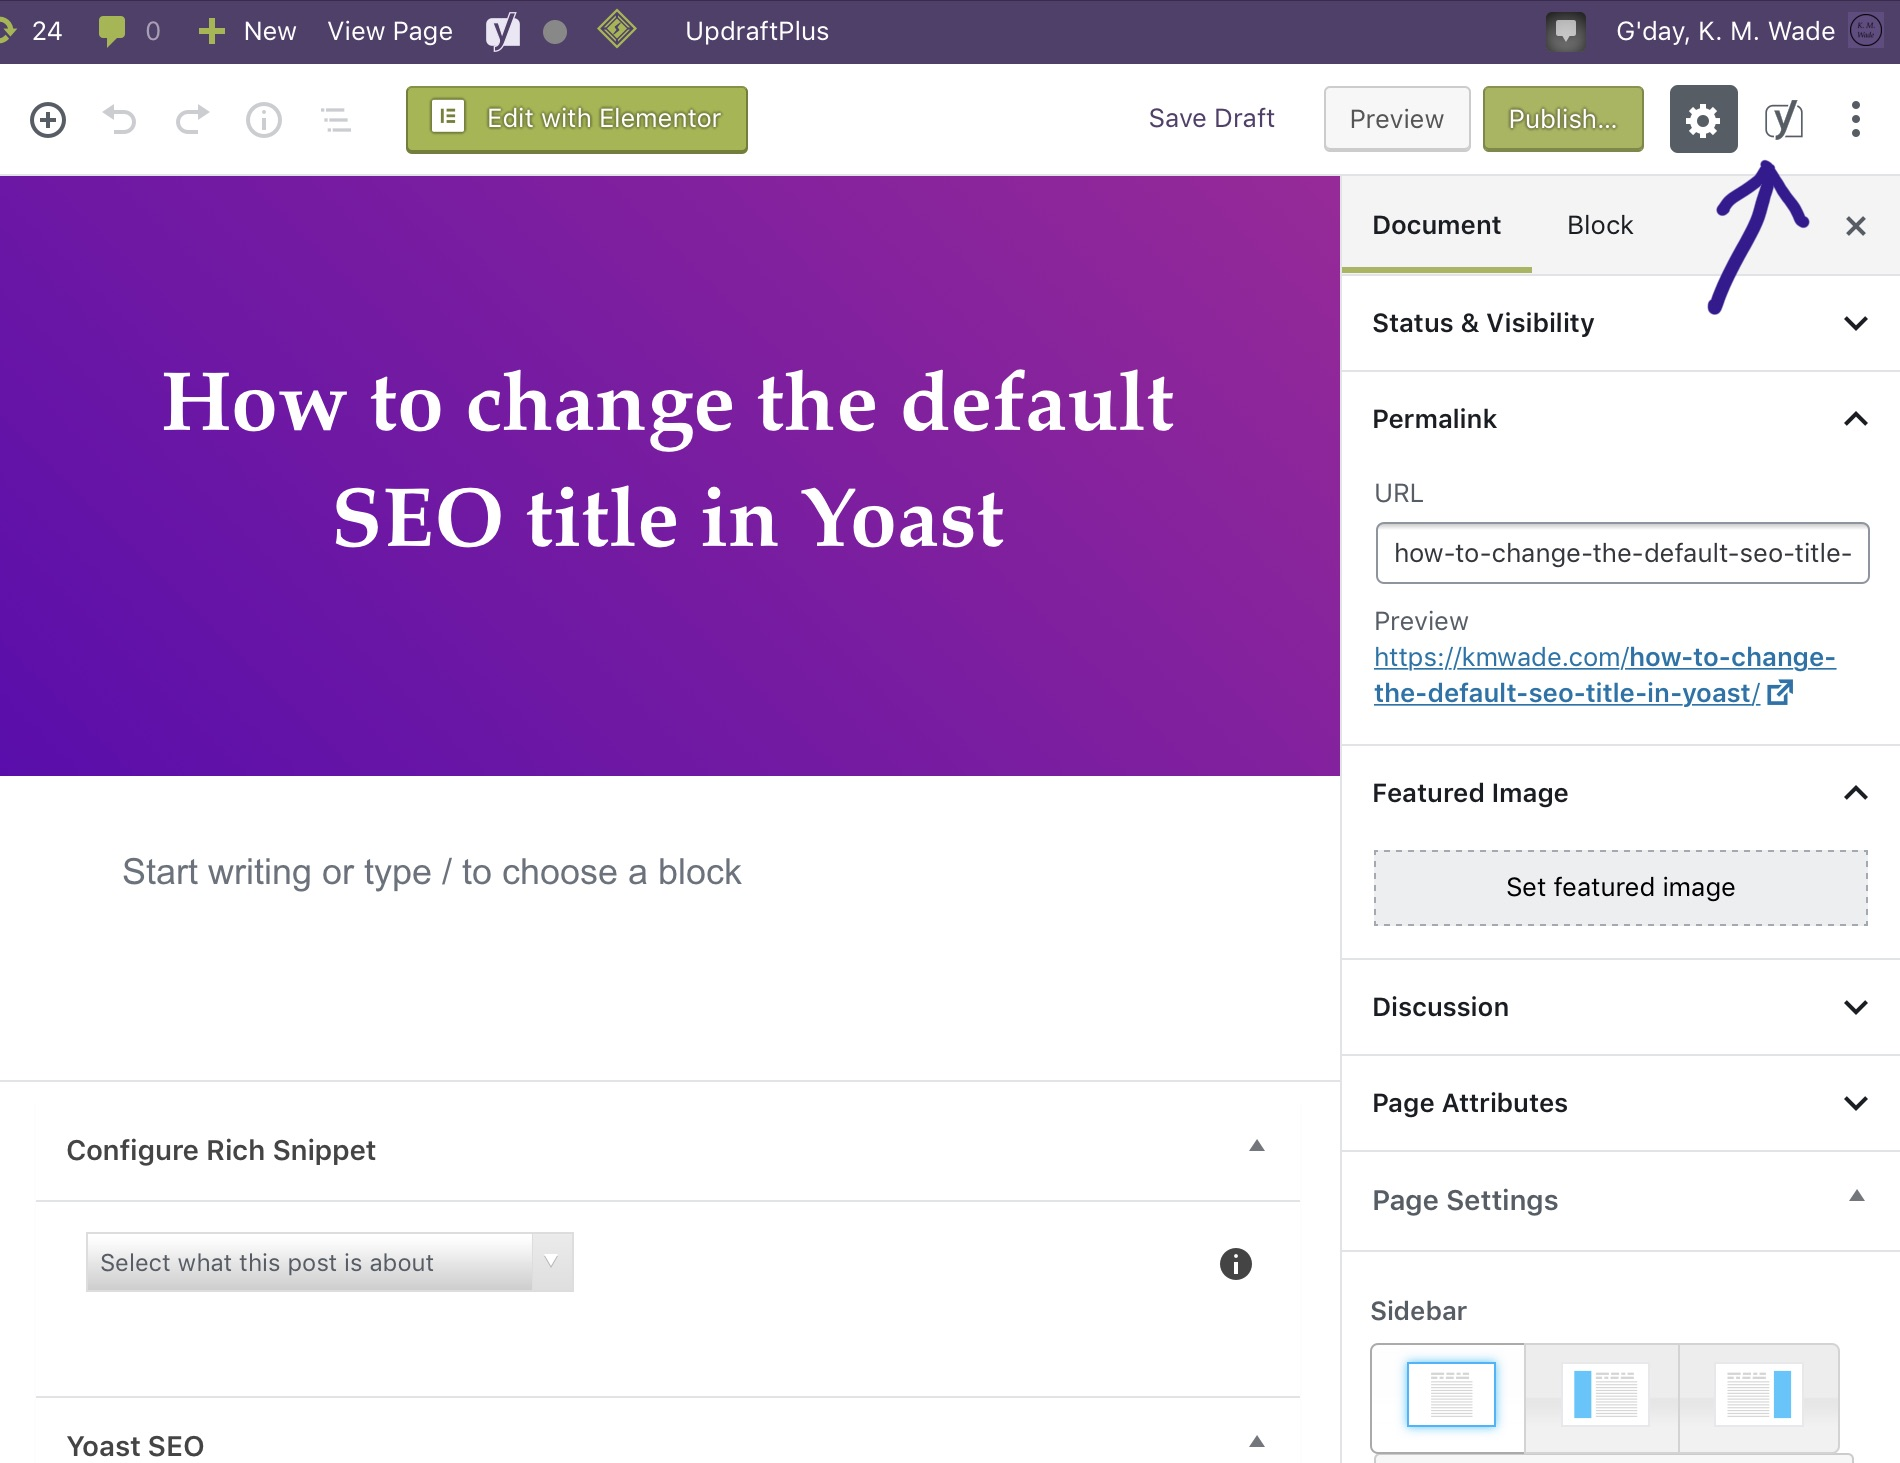 A screenshot showing the location of the Yoast SEO icon